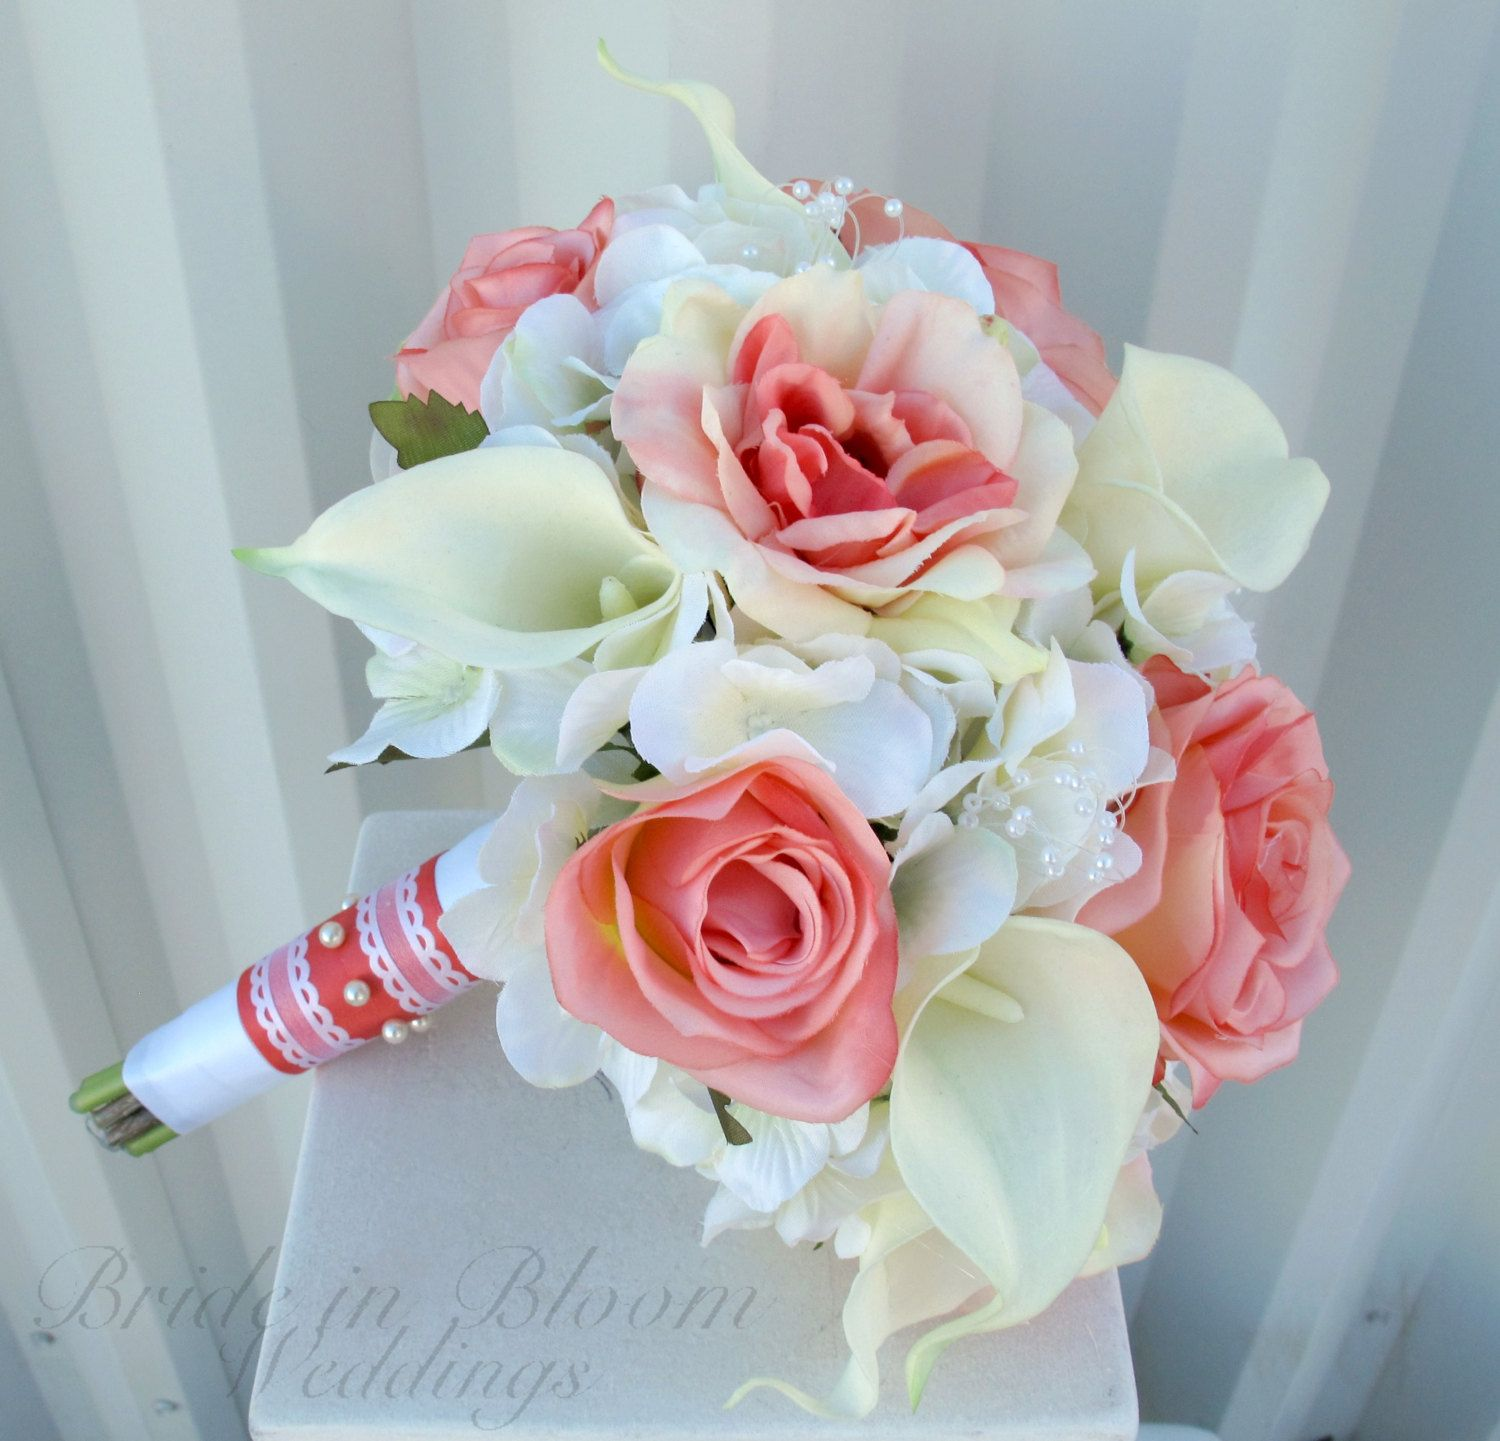 Wedding bouquet coral rose white real by brideinbloomweddings wedding bouquet coral rose white real by brideinbloomweddings 8500 dhlflorist Image collections